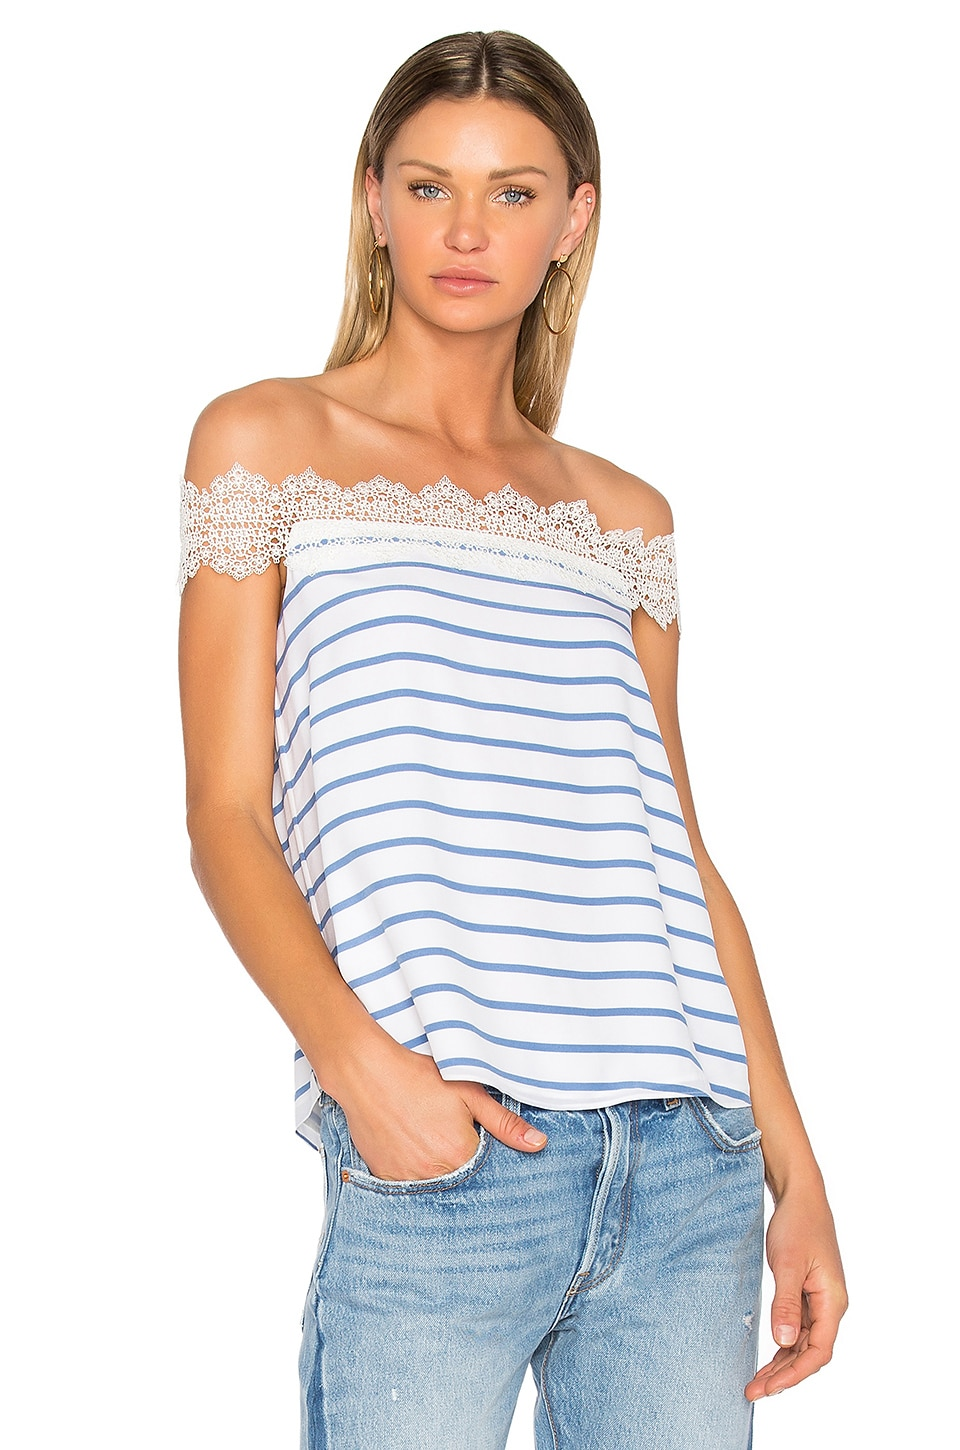 The Dayna Top by Cami Nyc